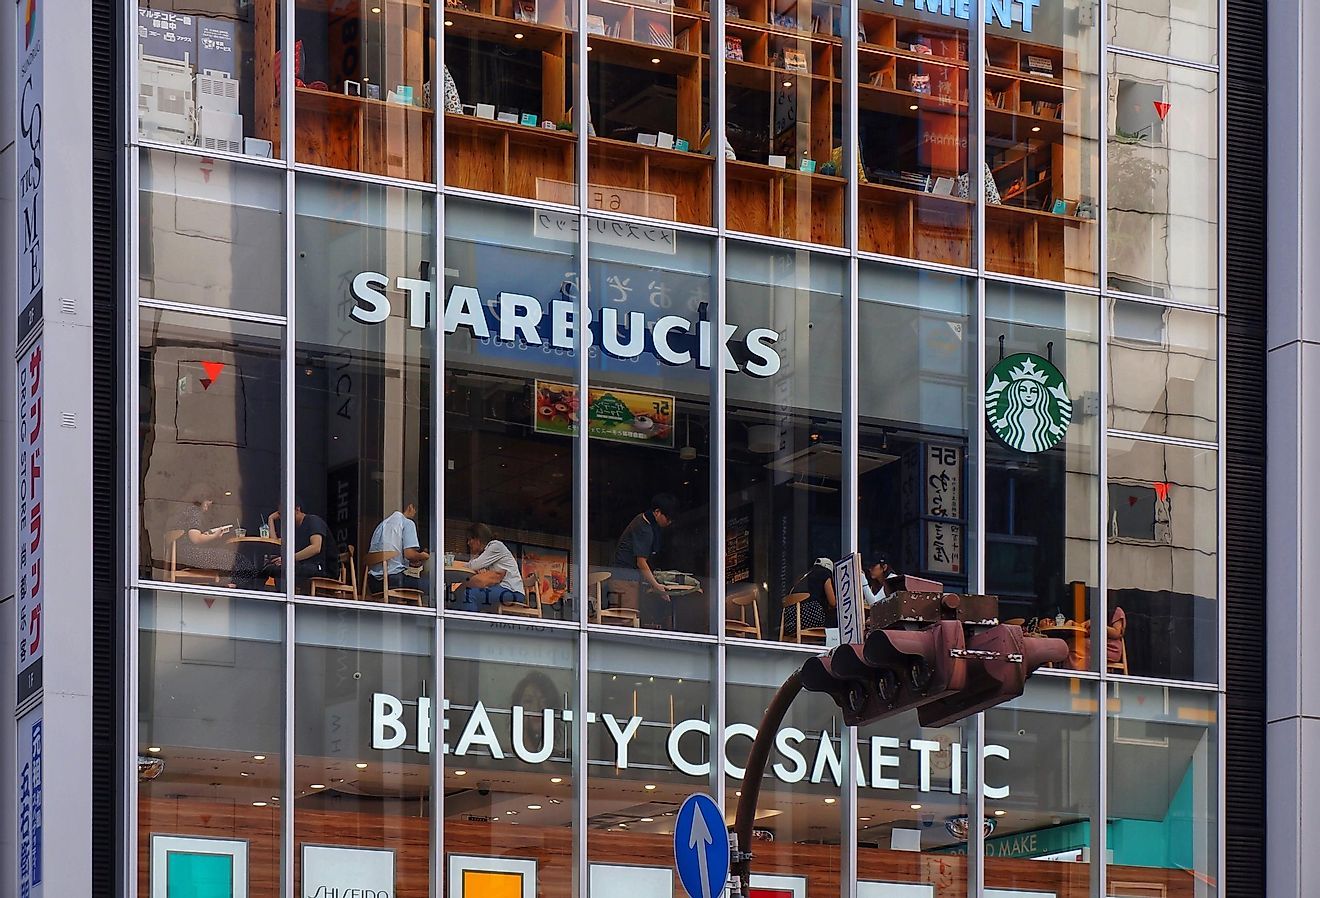 One the largest Starbucks in the world is located in Tokyo, Japan. Photo by Andy Xu on Unsplash